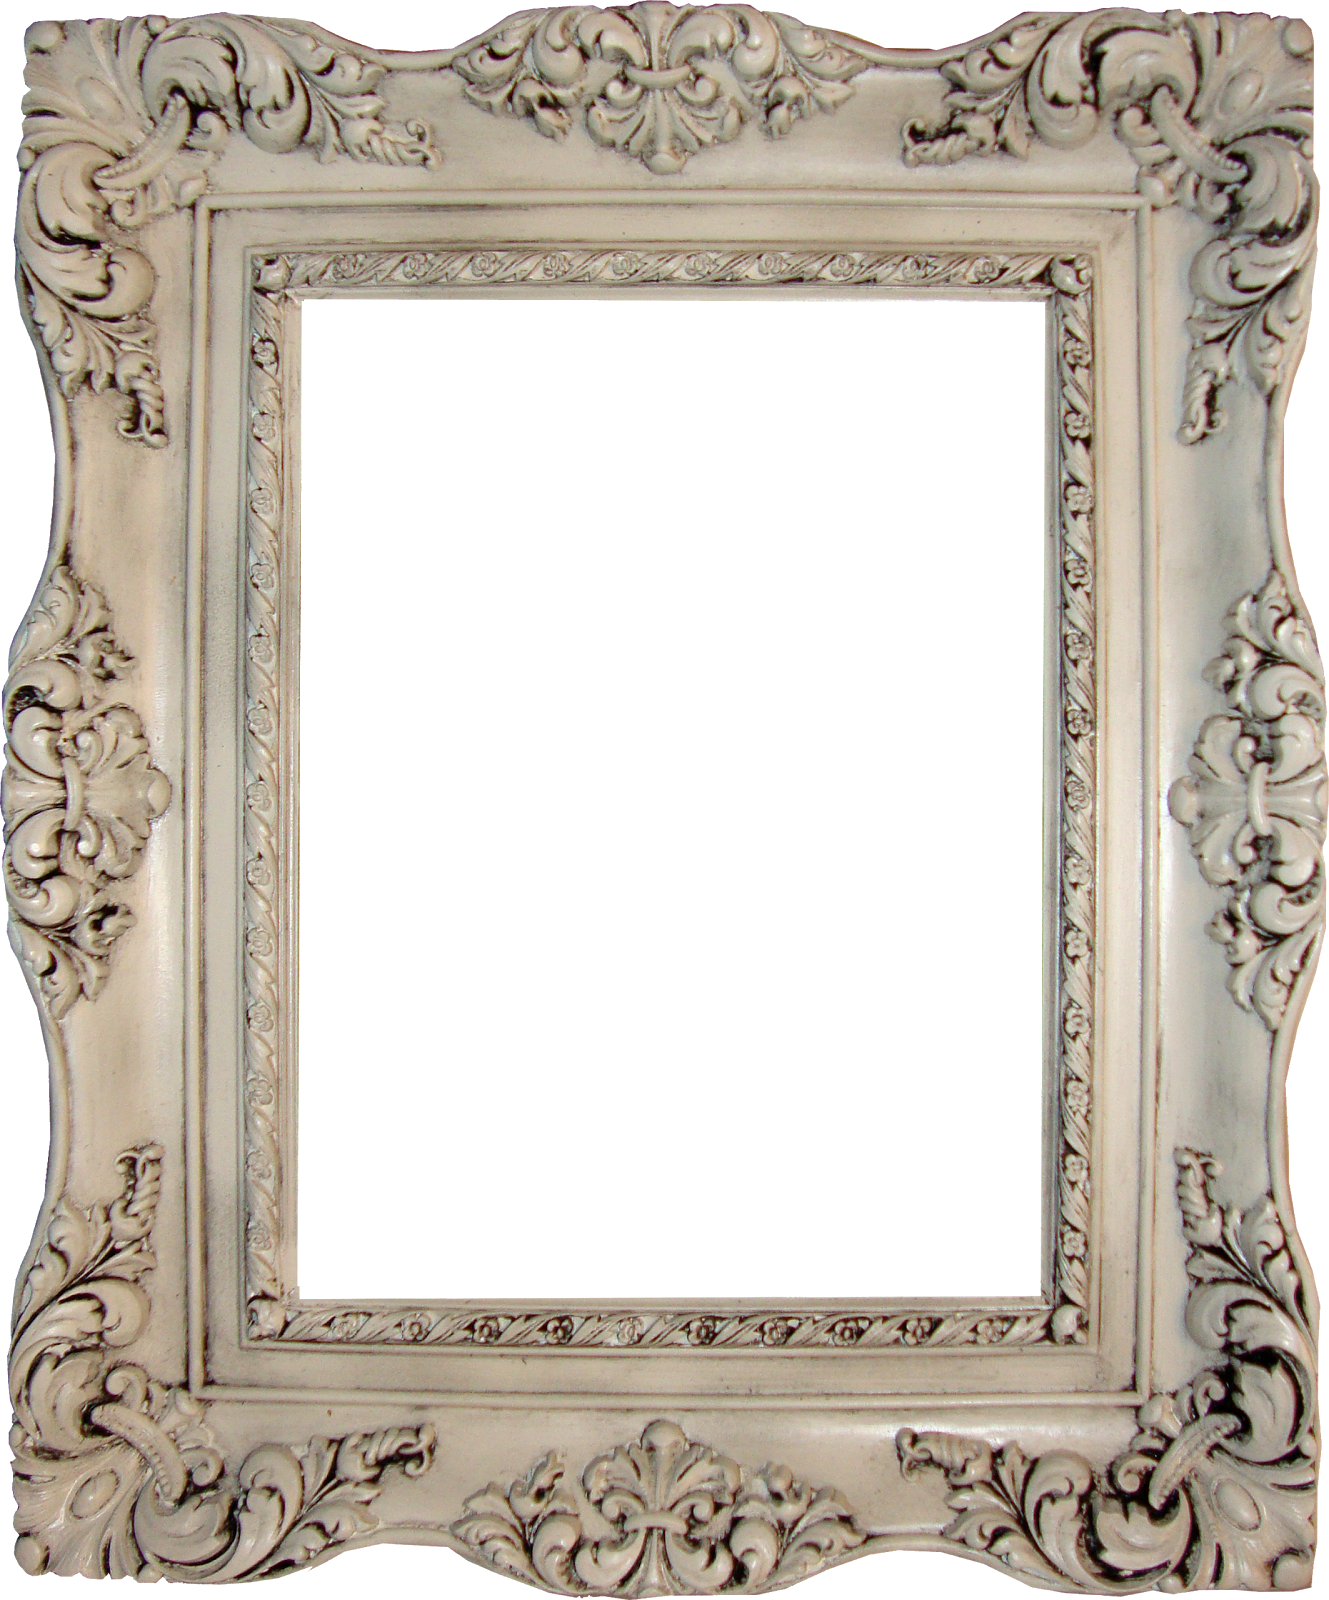 Wood Photo Frames : Presenting: Digital Vintage/antique photo frames Printables!